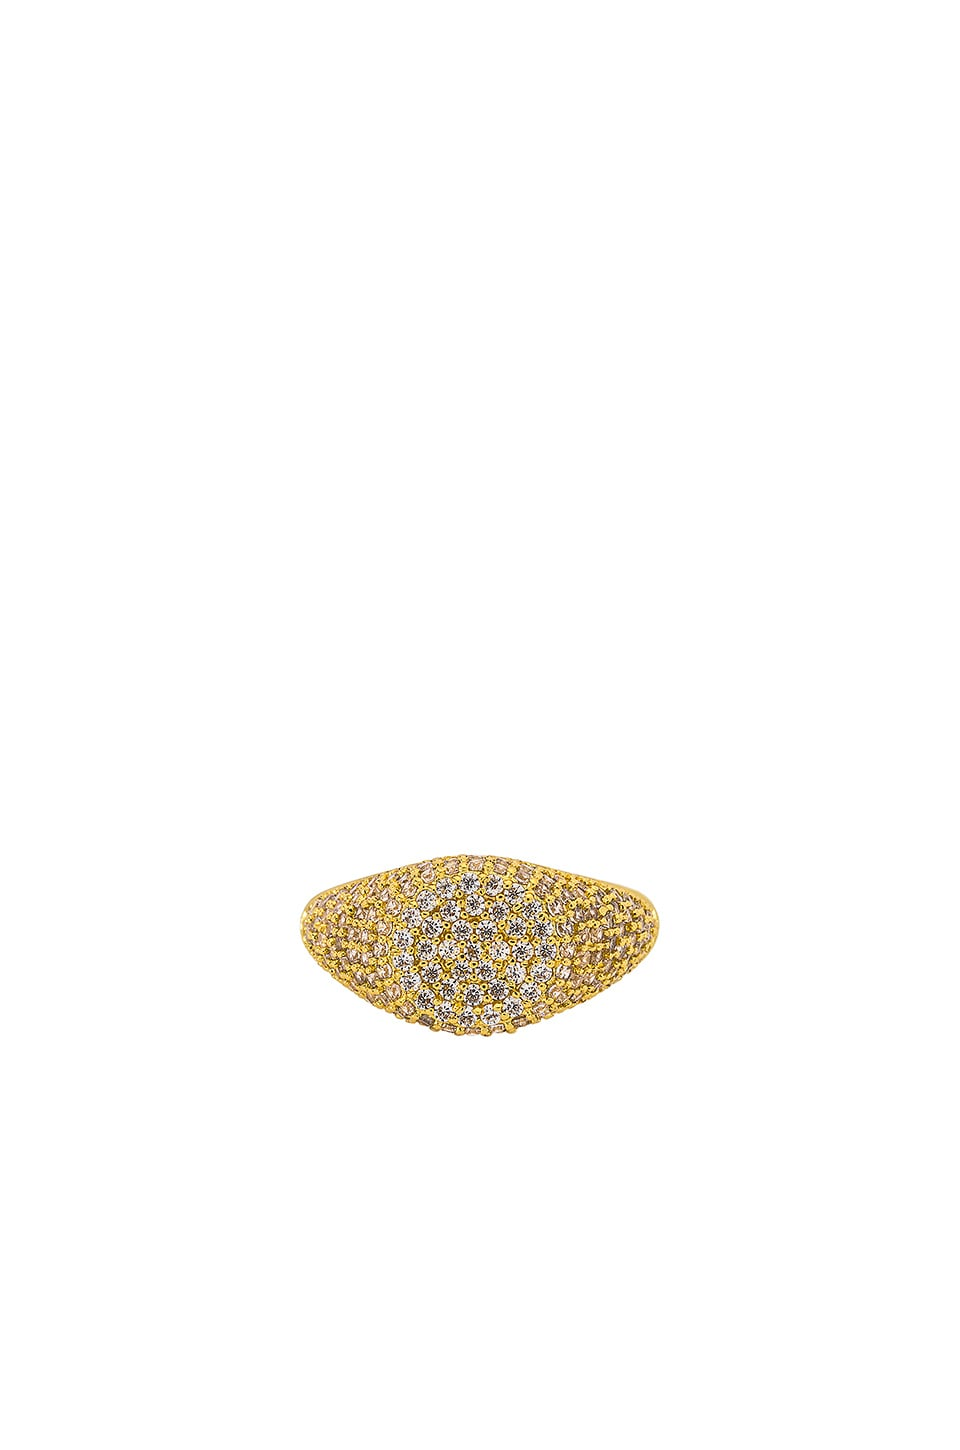 Luv AJ The Pave Signet Ring in Gold